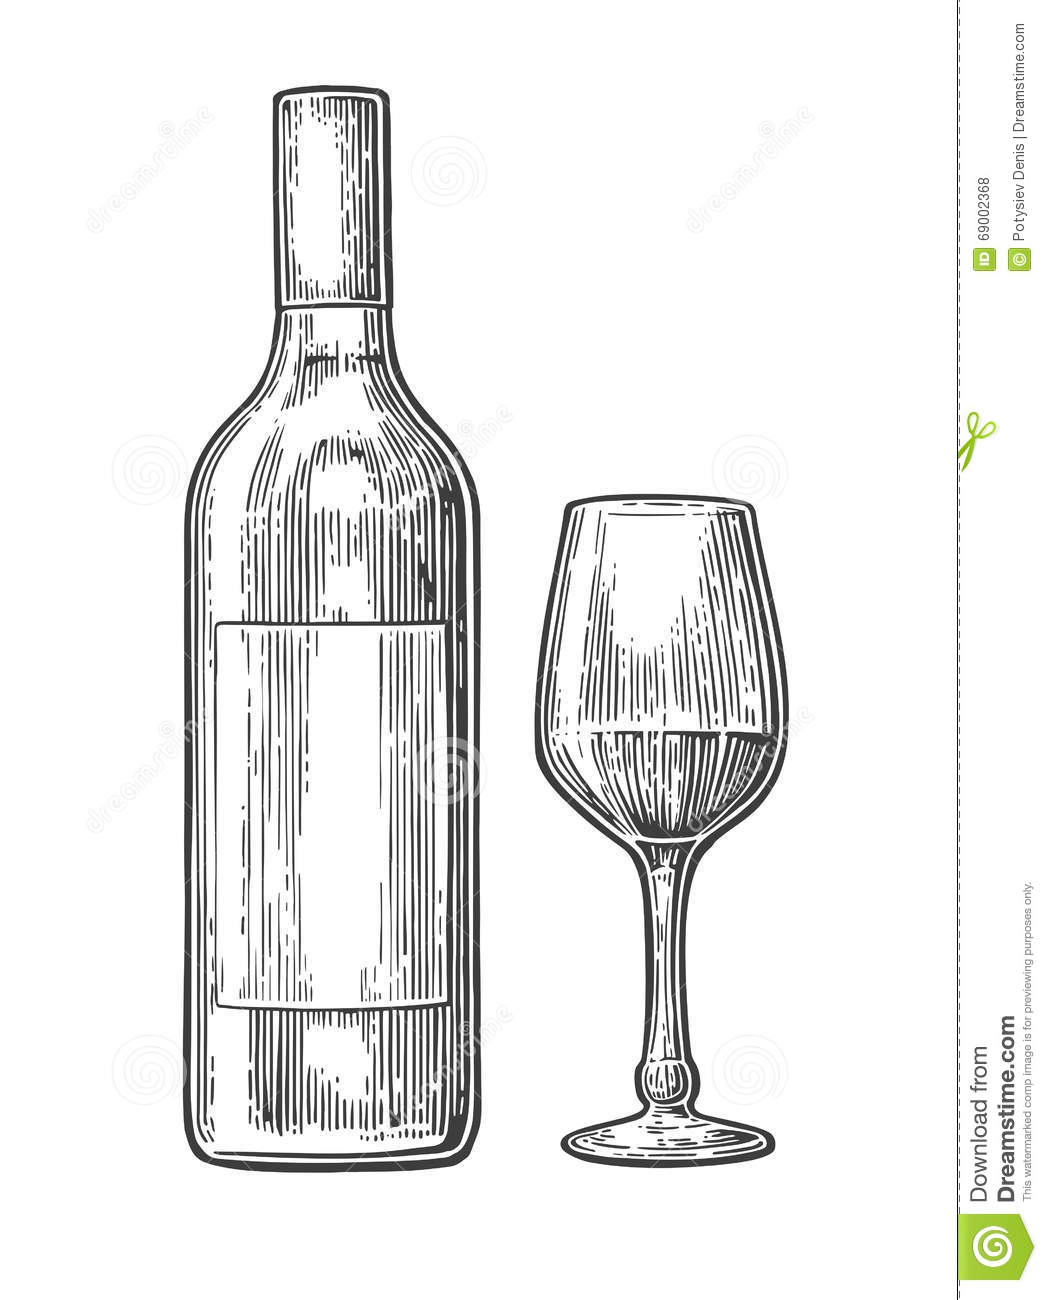 Bottle And Glass With Wine Black Vintage Engraved Illustration On White Background For Label Poster Web